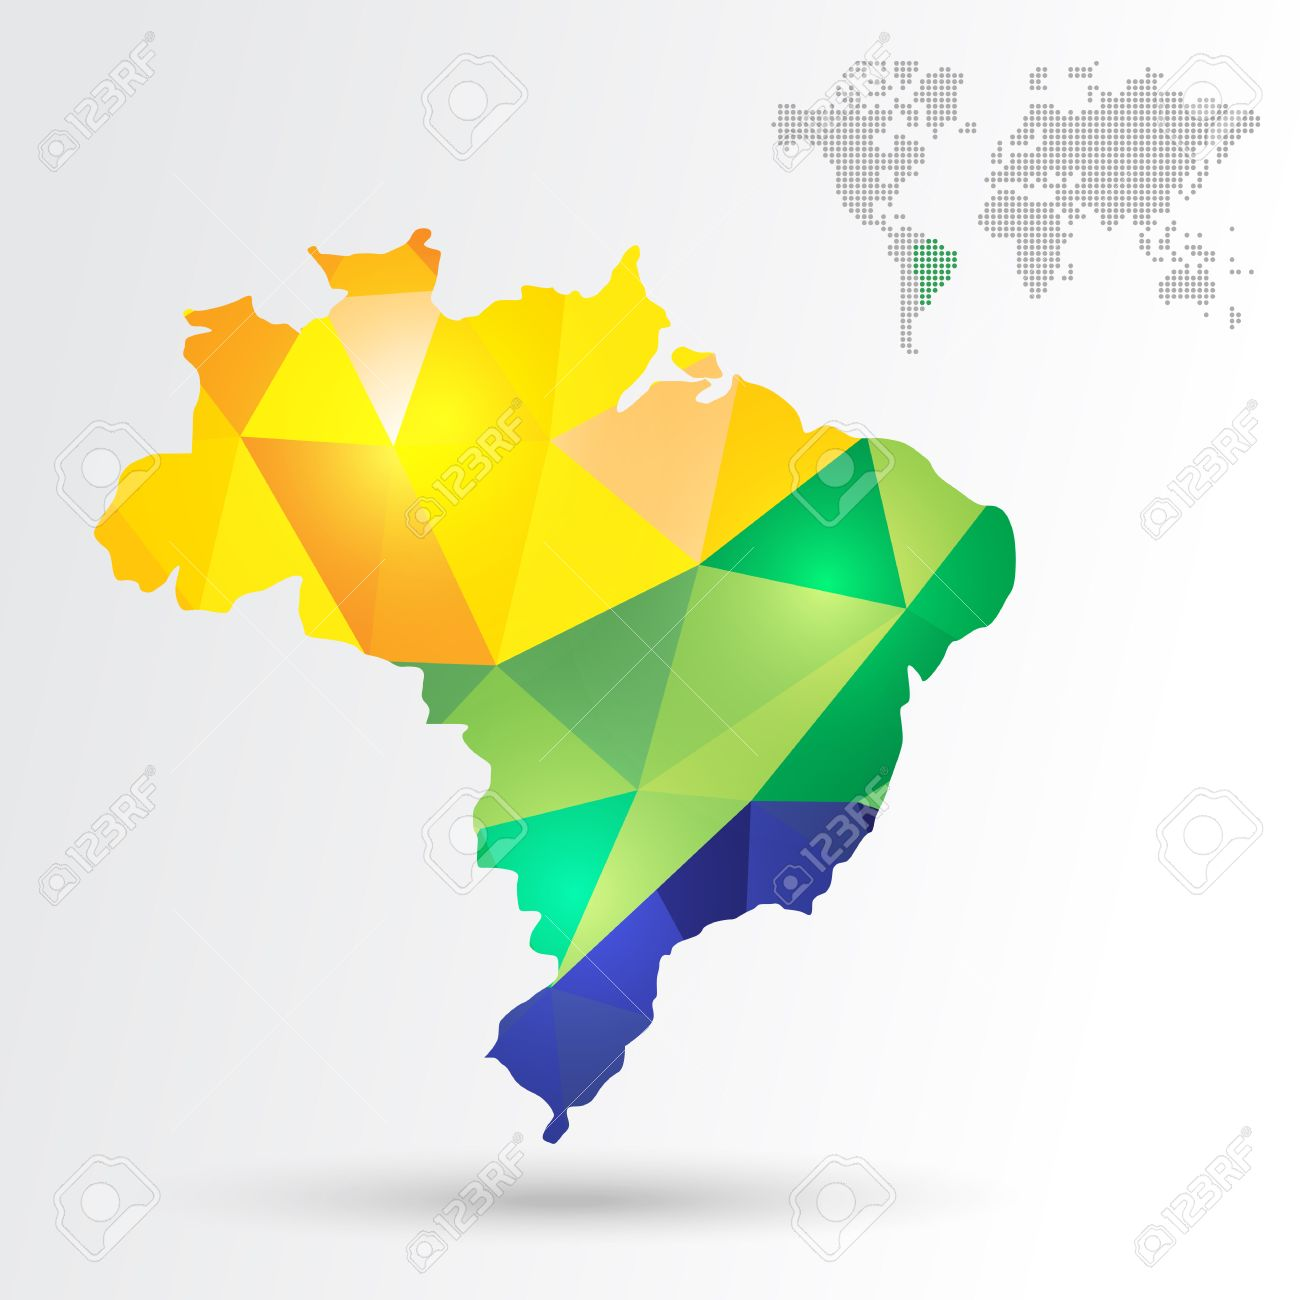 Infographic Abstract Brazil Map With Dotted Map World EPS10 – Map World Brazil